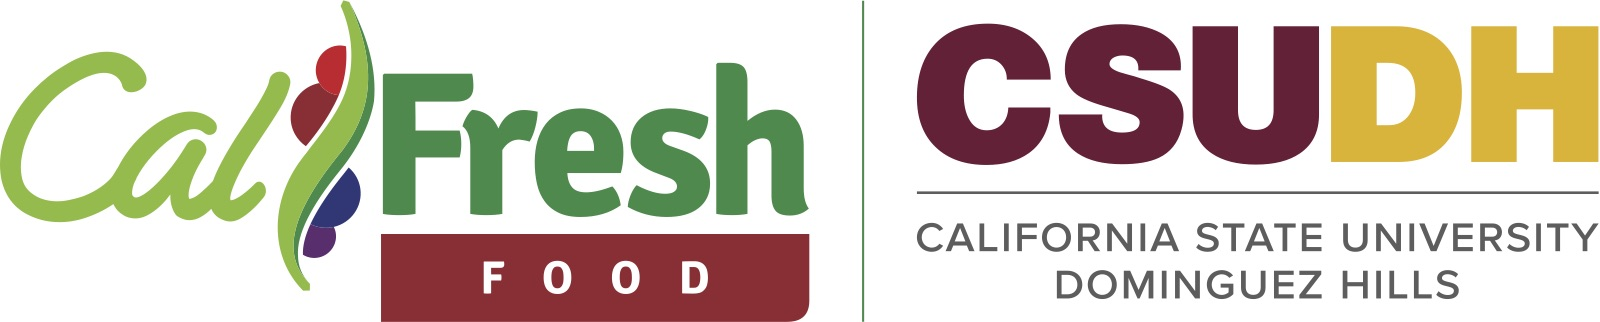 csudh-calfresh-food-logo-new